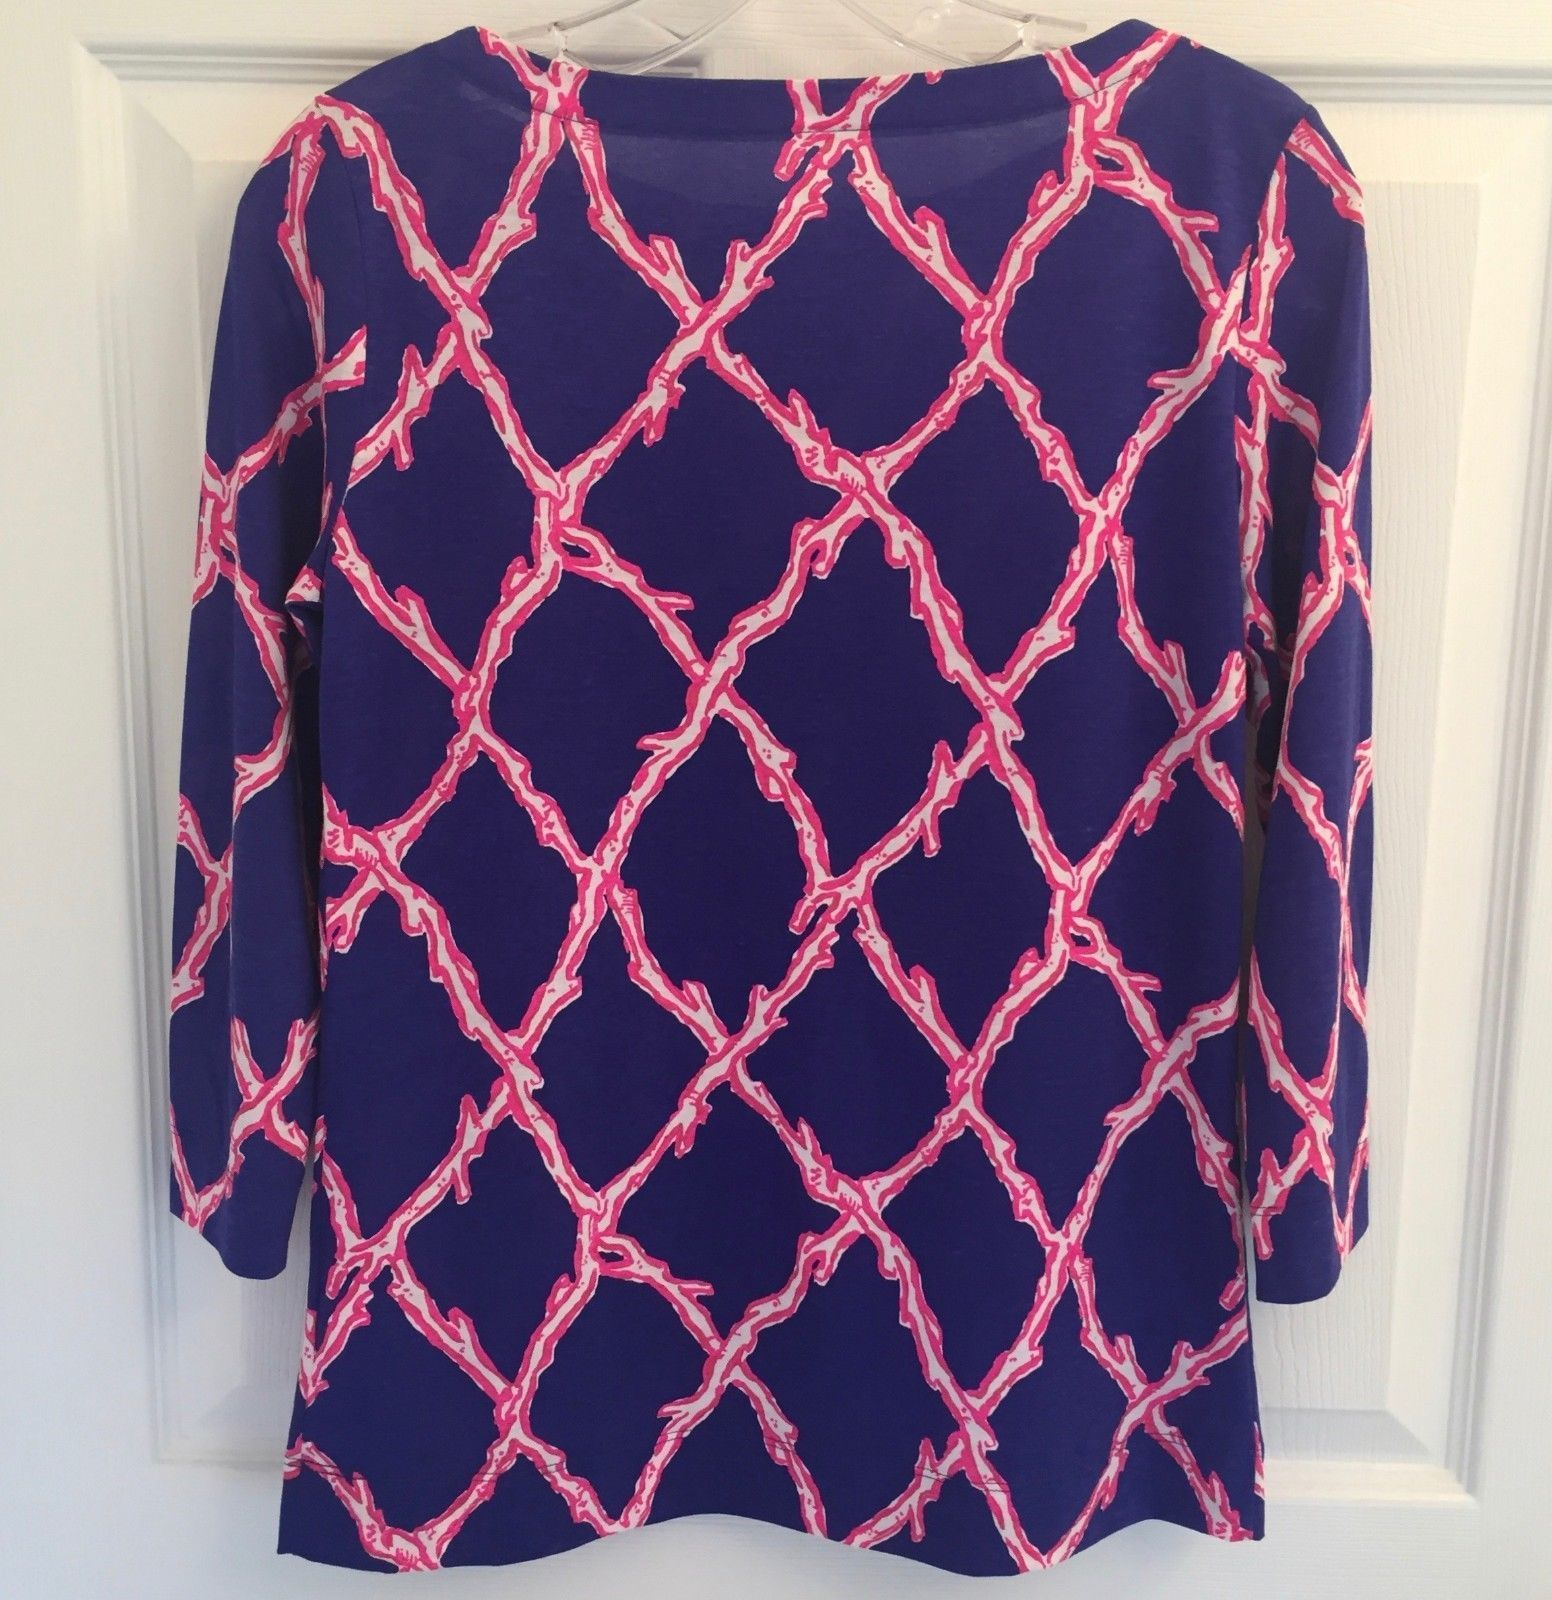 4b13f252dfe NEW LILLY PULITZER SZ XS Women s Navy Pink Top Blouse Tunic Gold Button  Accents